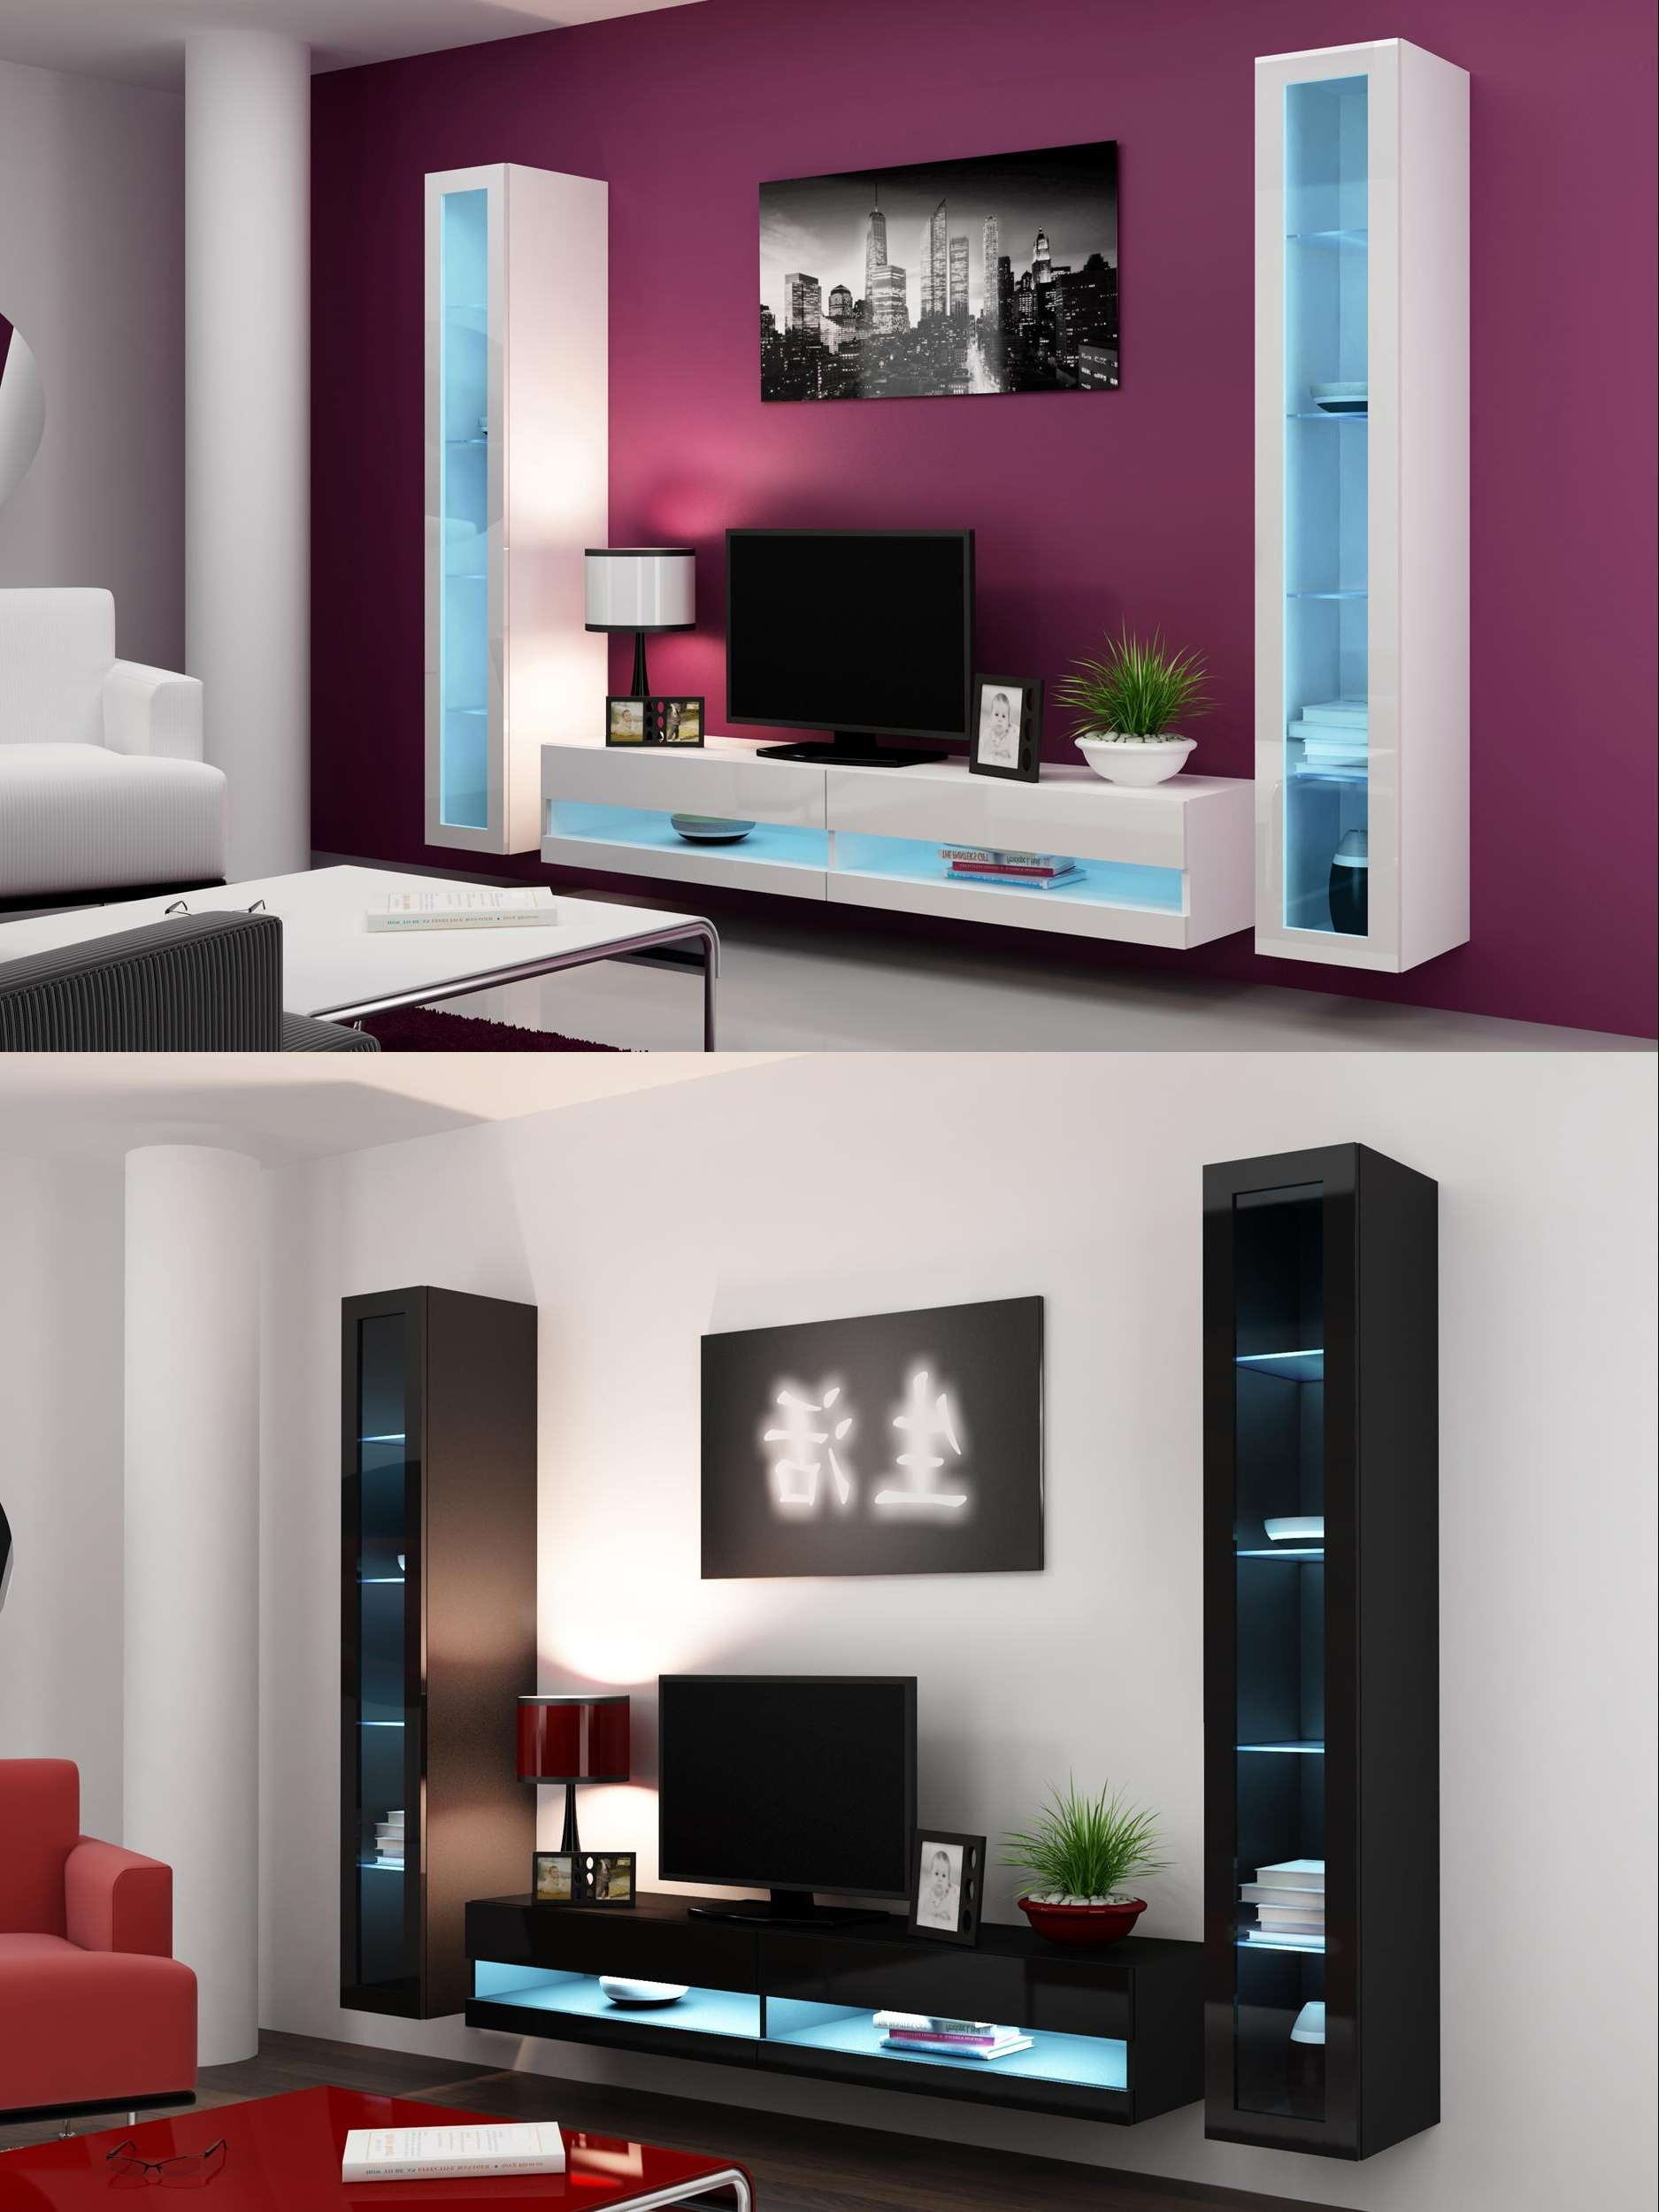 High Gloss Living Room Set With Led Lights, Tv Stand, Wall Mounted Regarding Tv Stands With Led Lights (View 4 of 15)